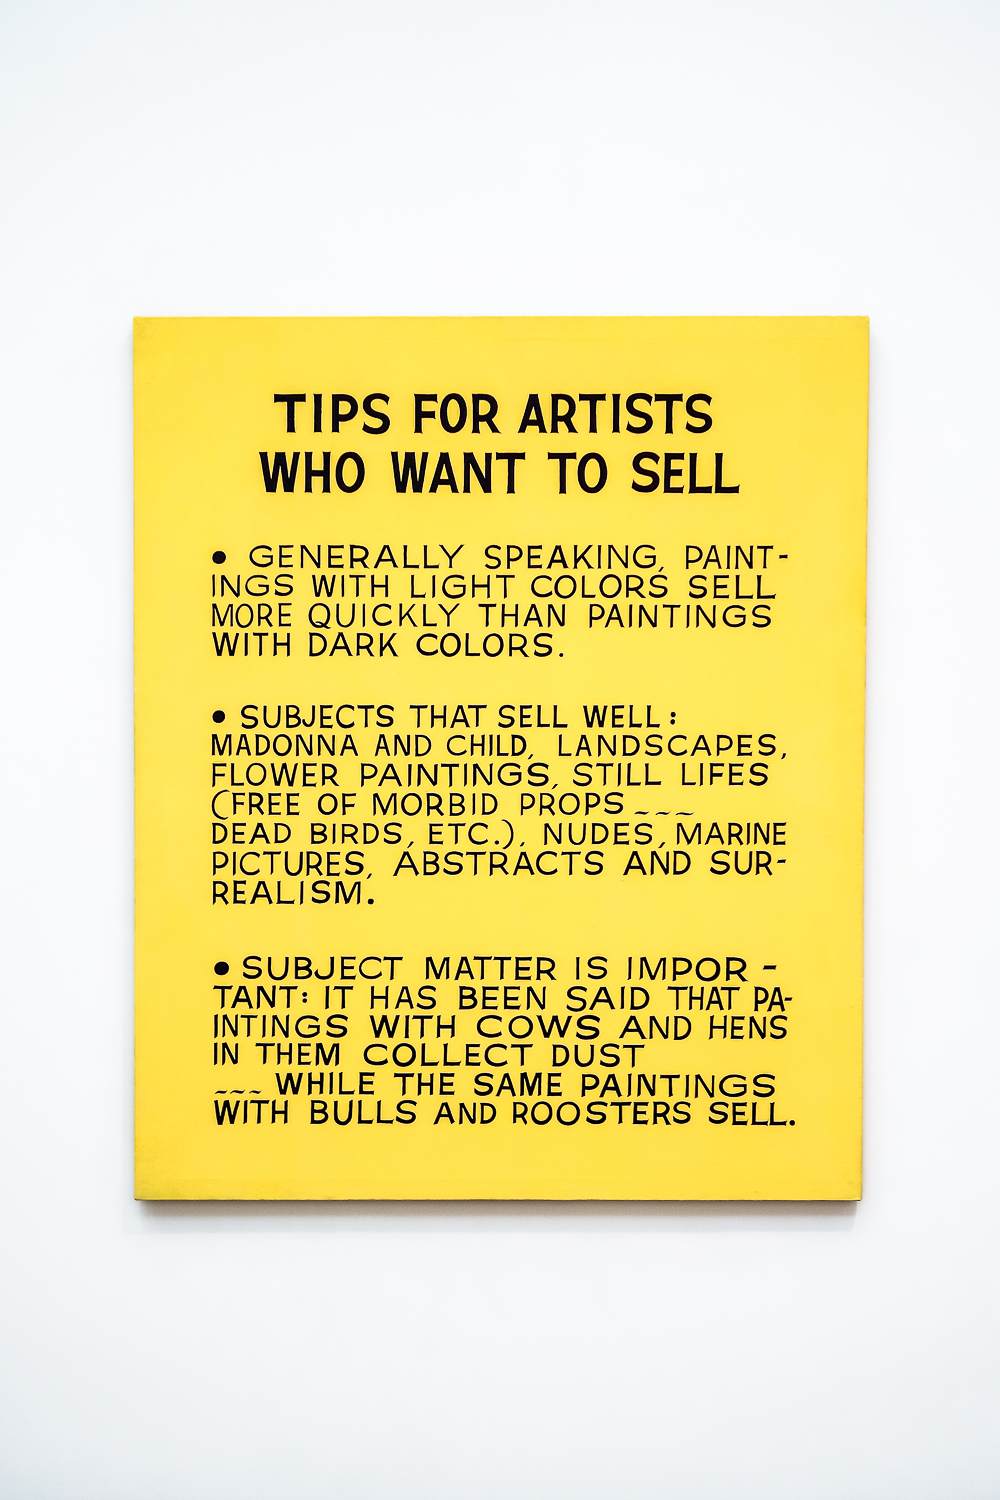 TIPS FOR ARTISTS WHO WANT TO SELL byJohn Baldessari